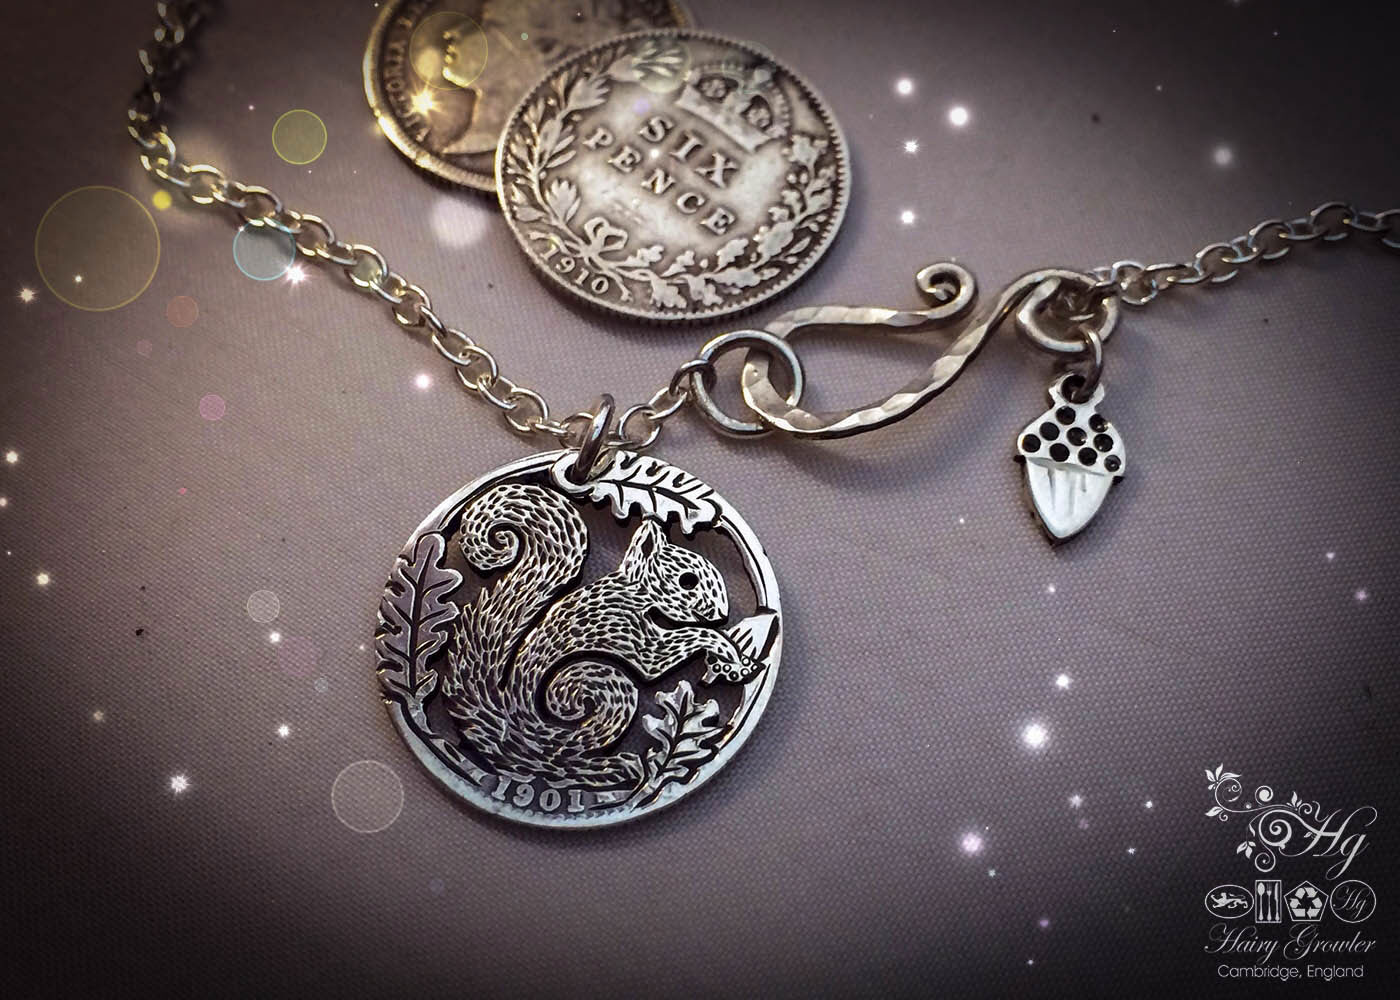 Handcrafted and recycled silver sixpence coin squirrel pendant necklace